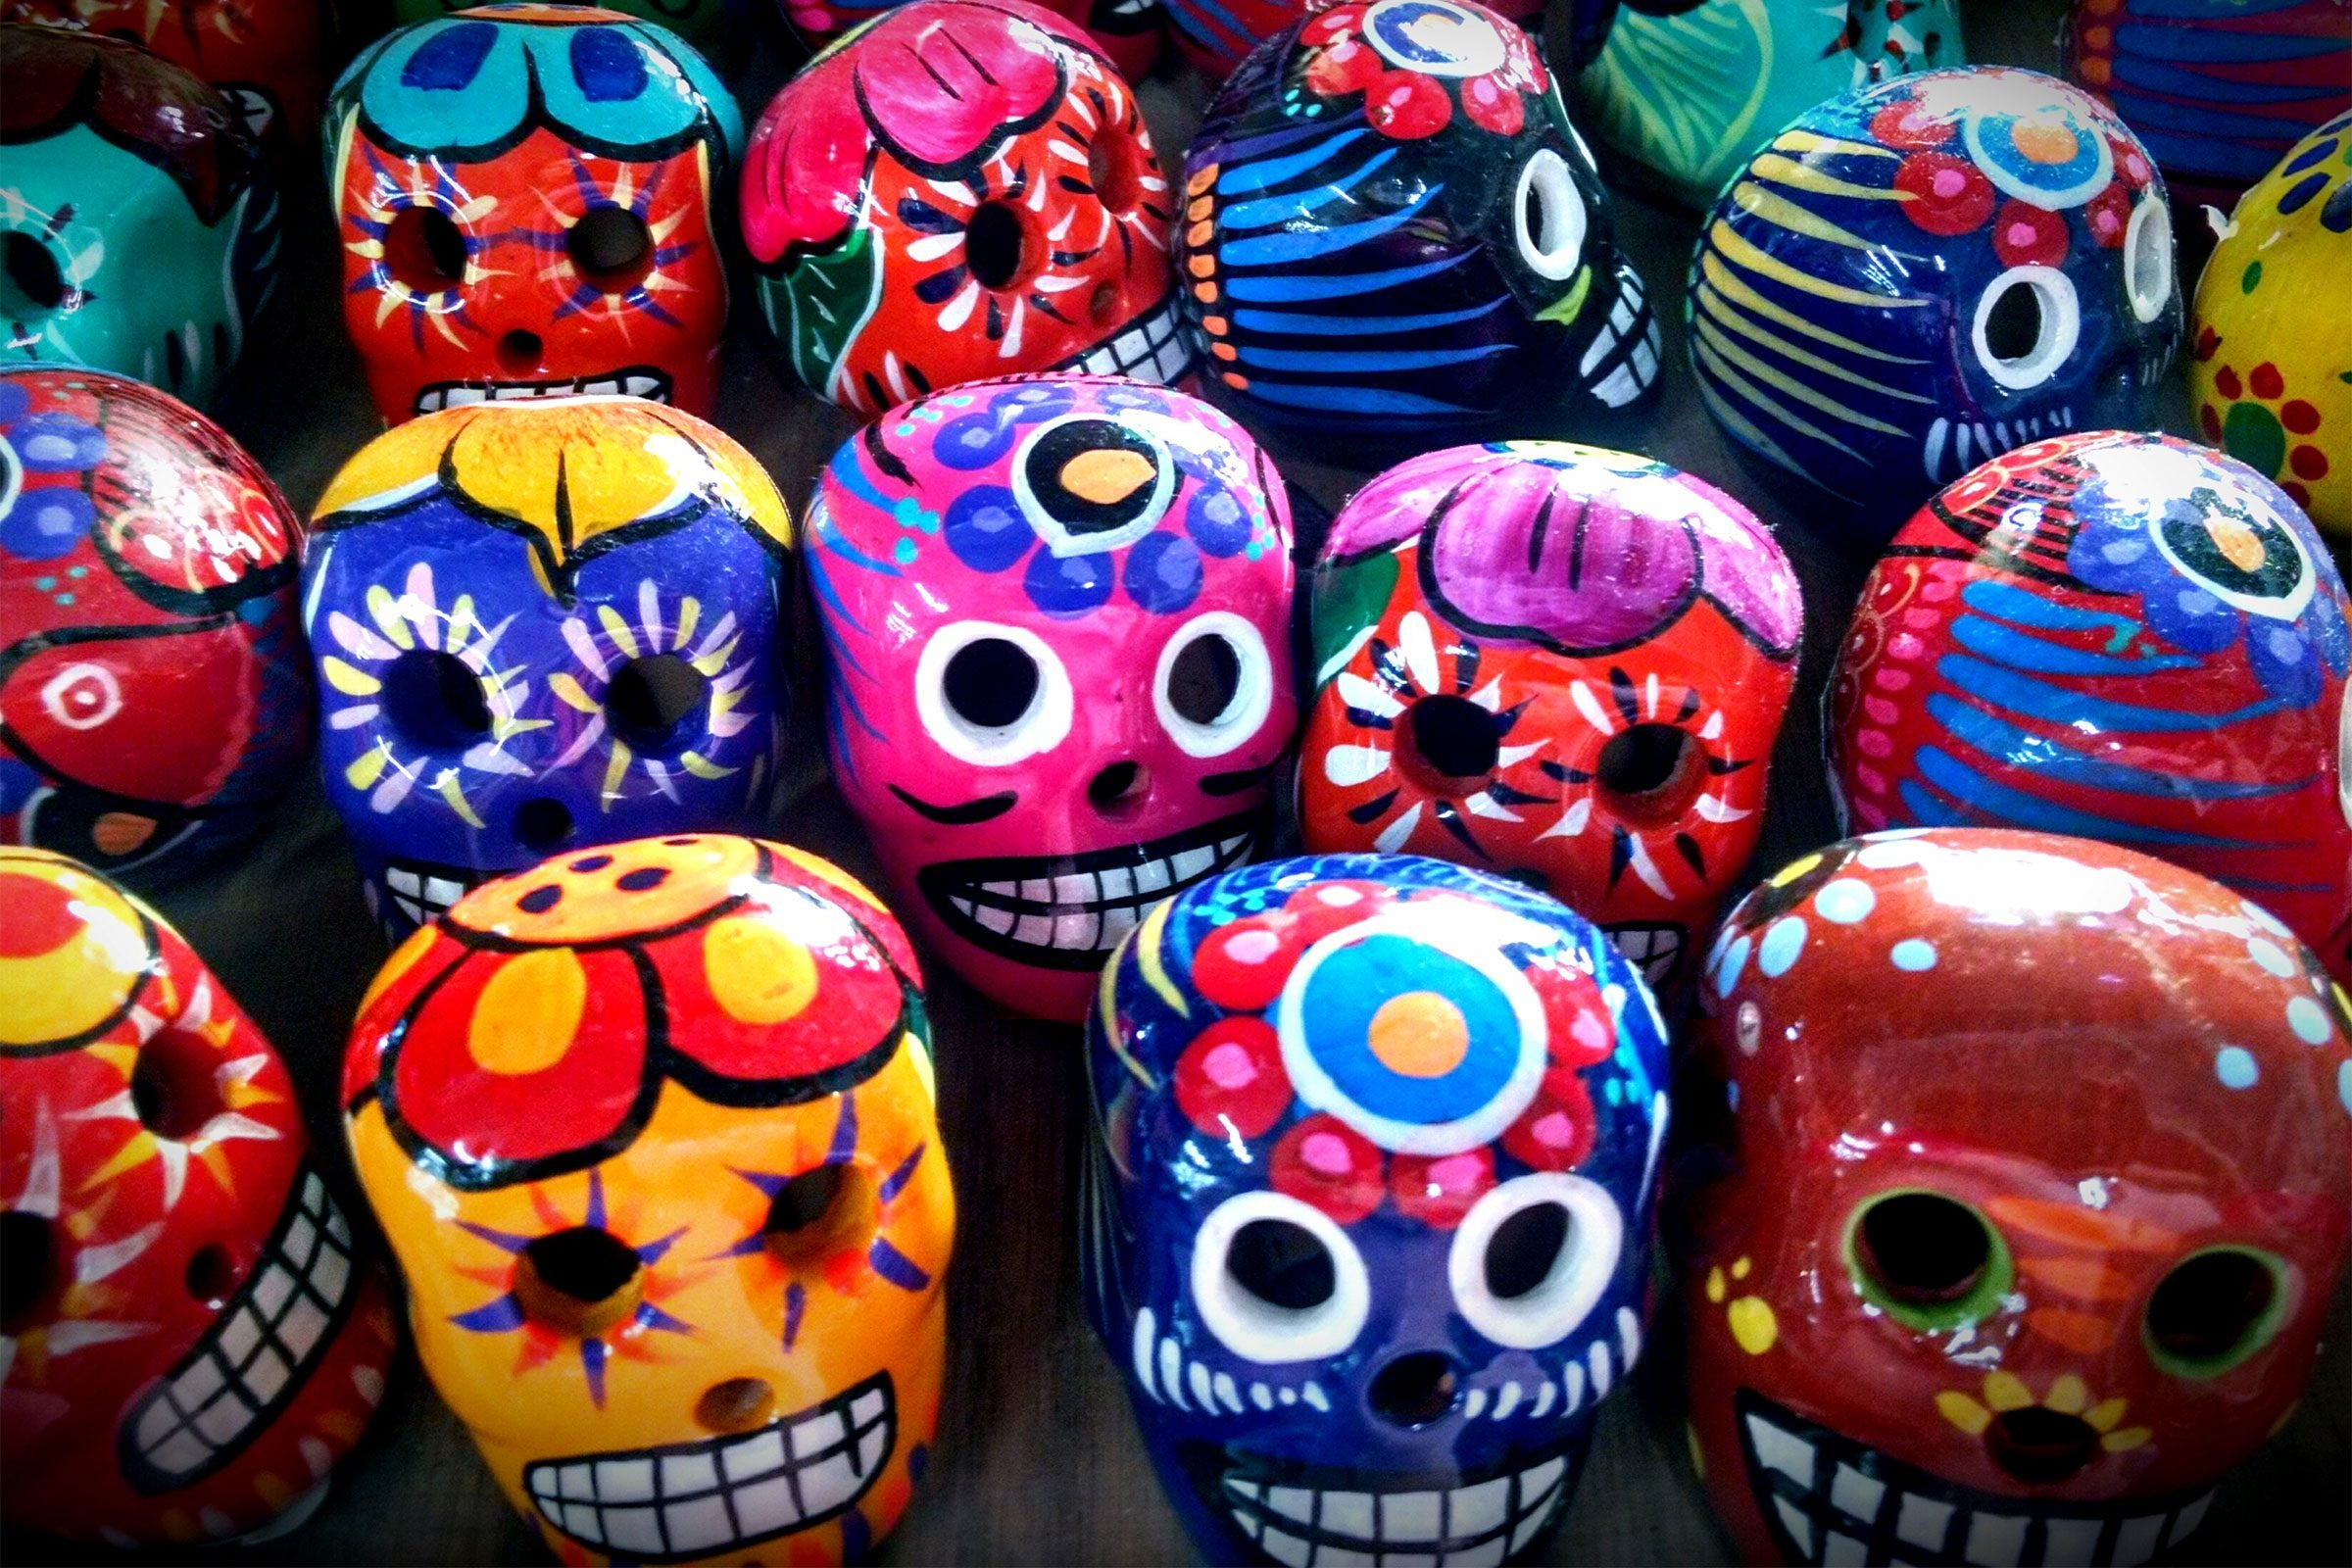 10 facts about day of the dead 7 spooky facts about the day of the dead reader s digest 13543